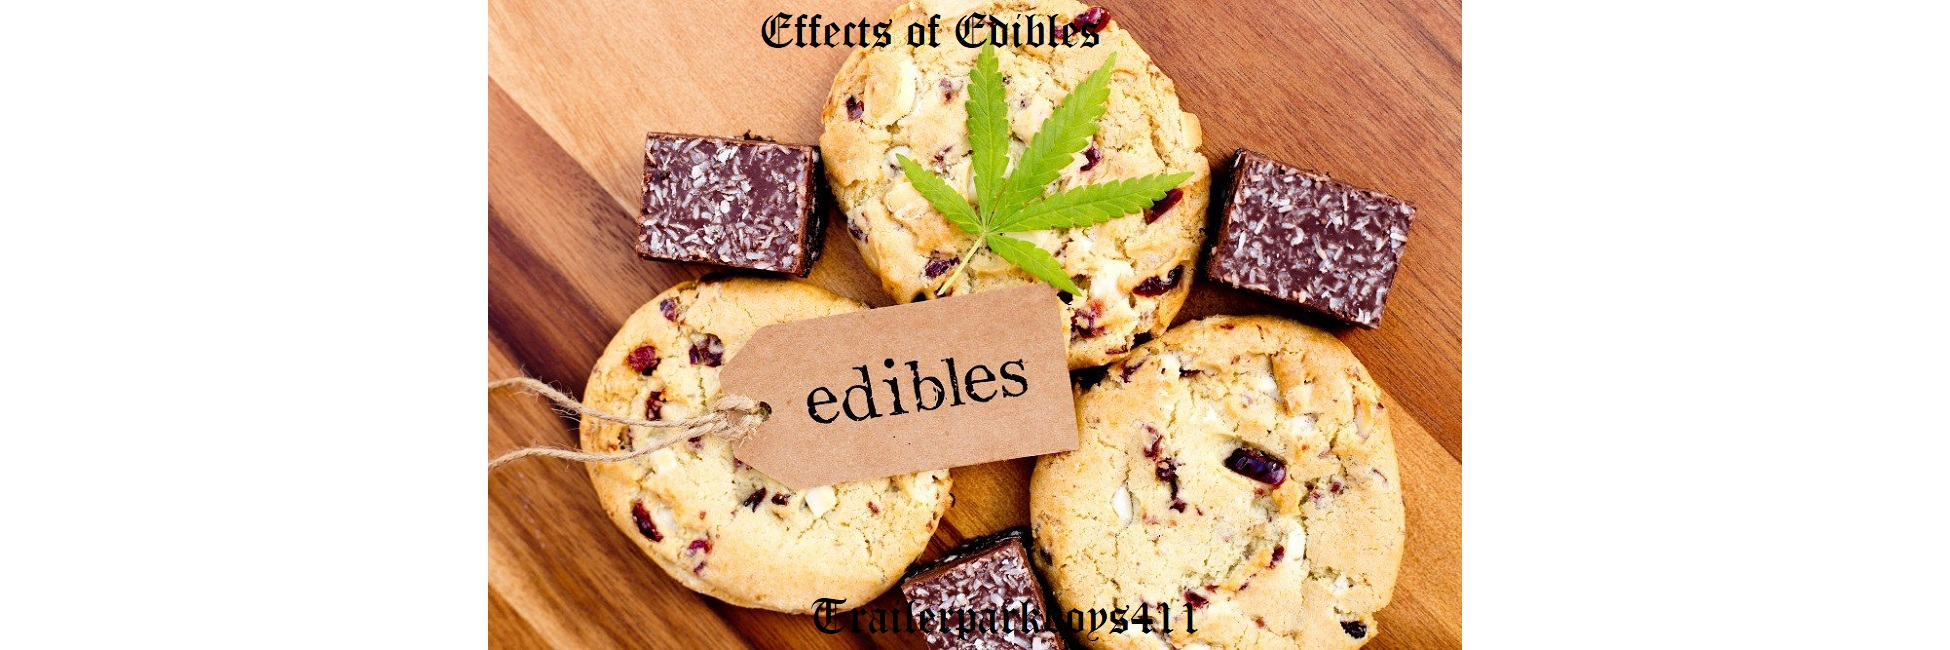 Effects of Edibles